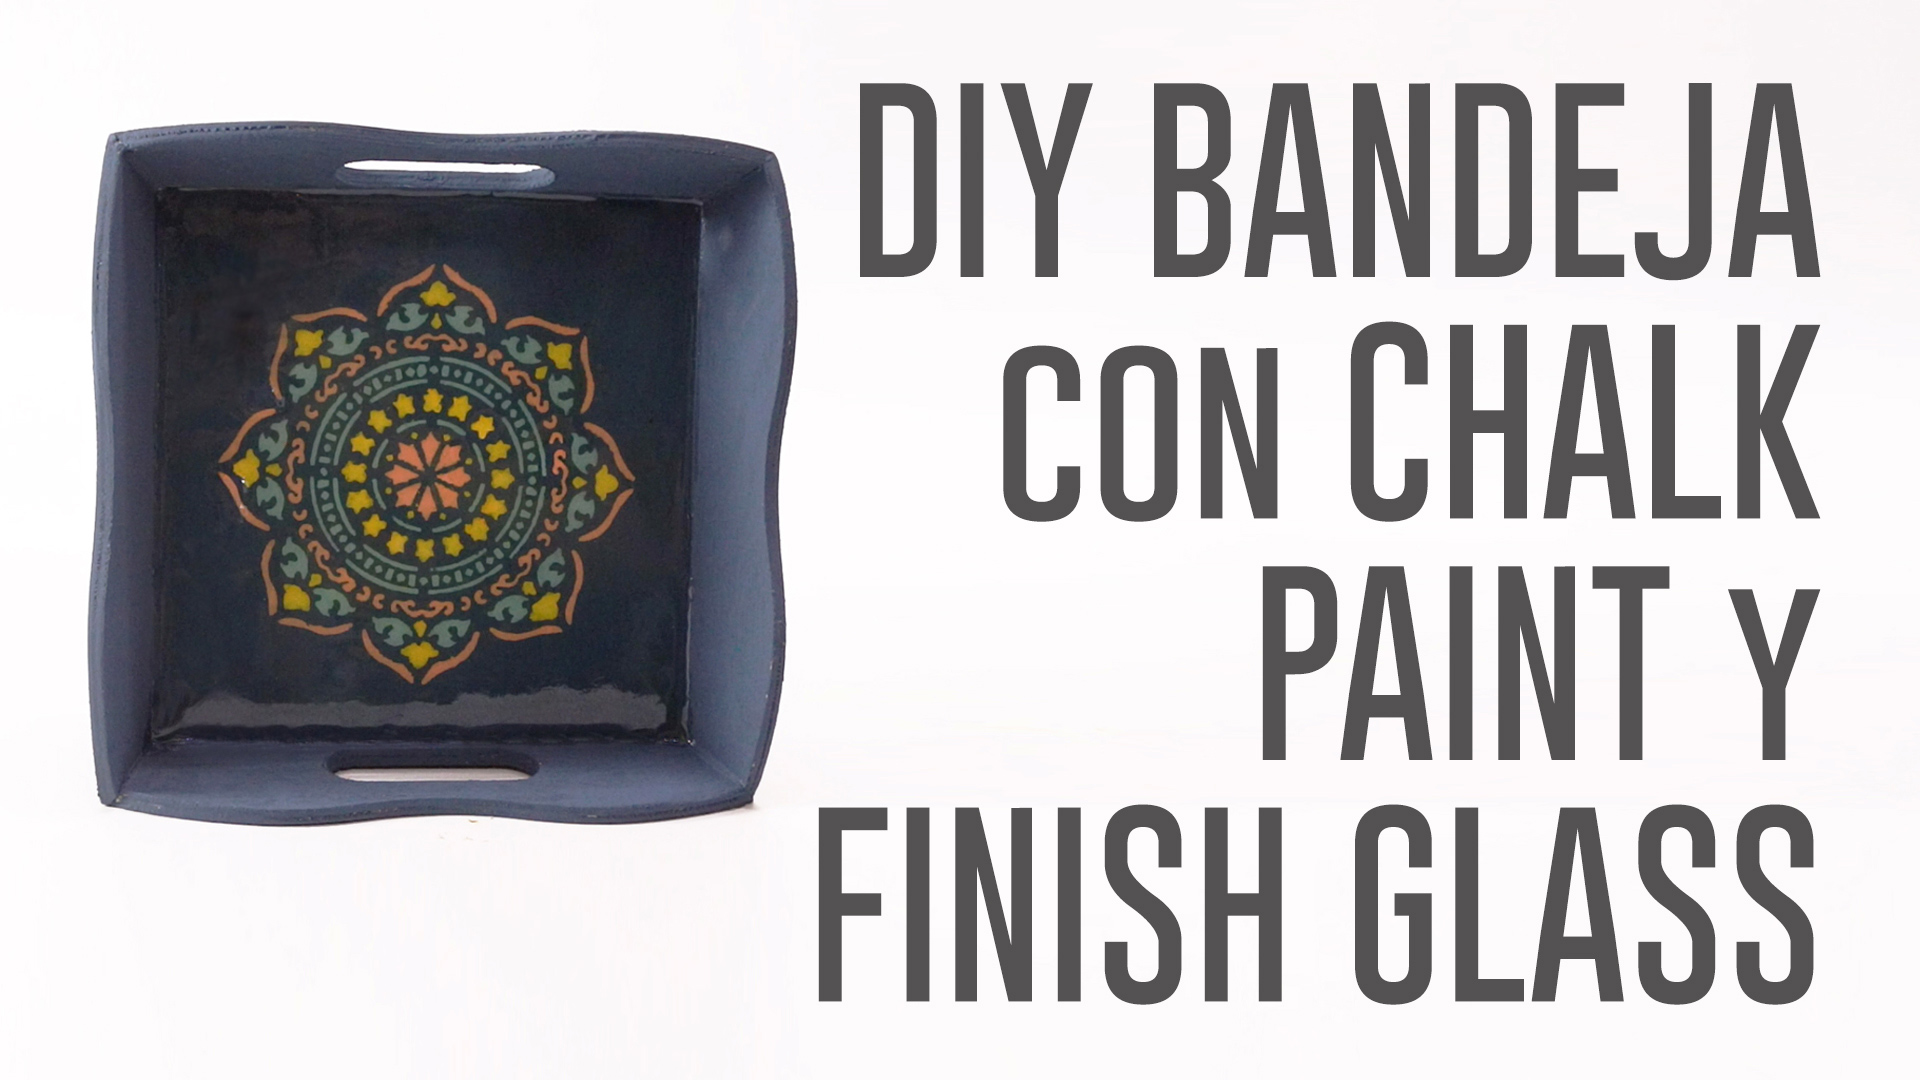 DIY BANDEJA CHALK PAINT FINISH GLASS.00_00_02_01.Imagen fija002